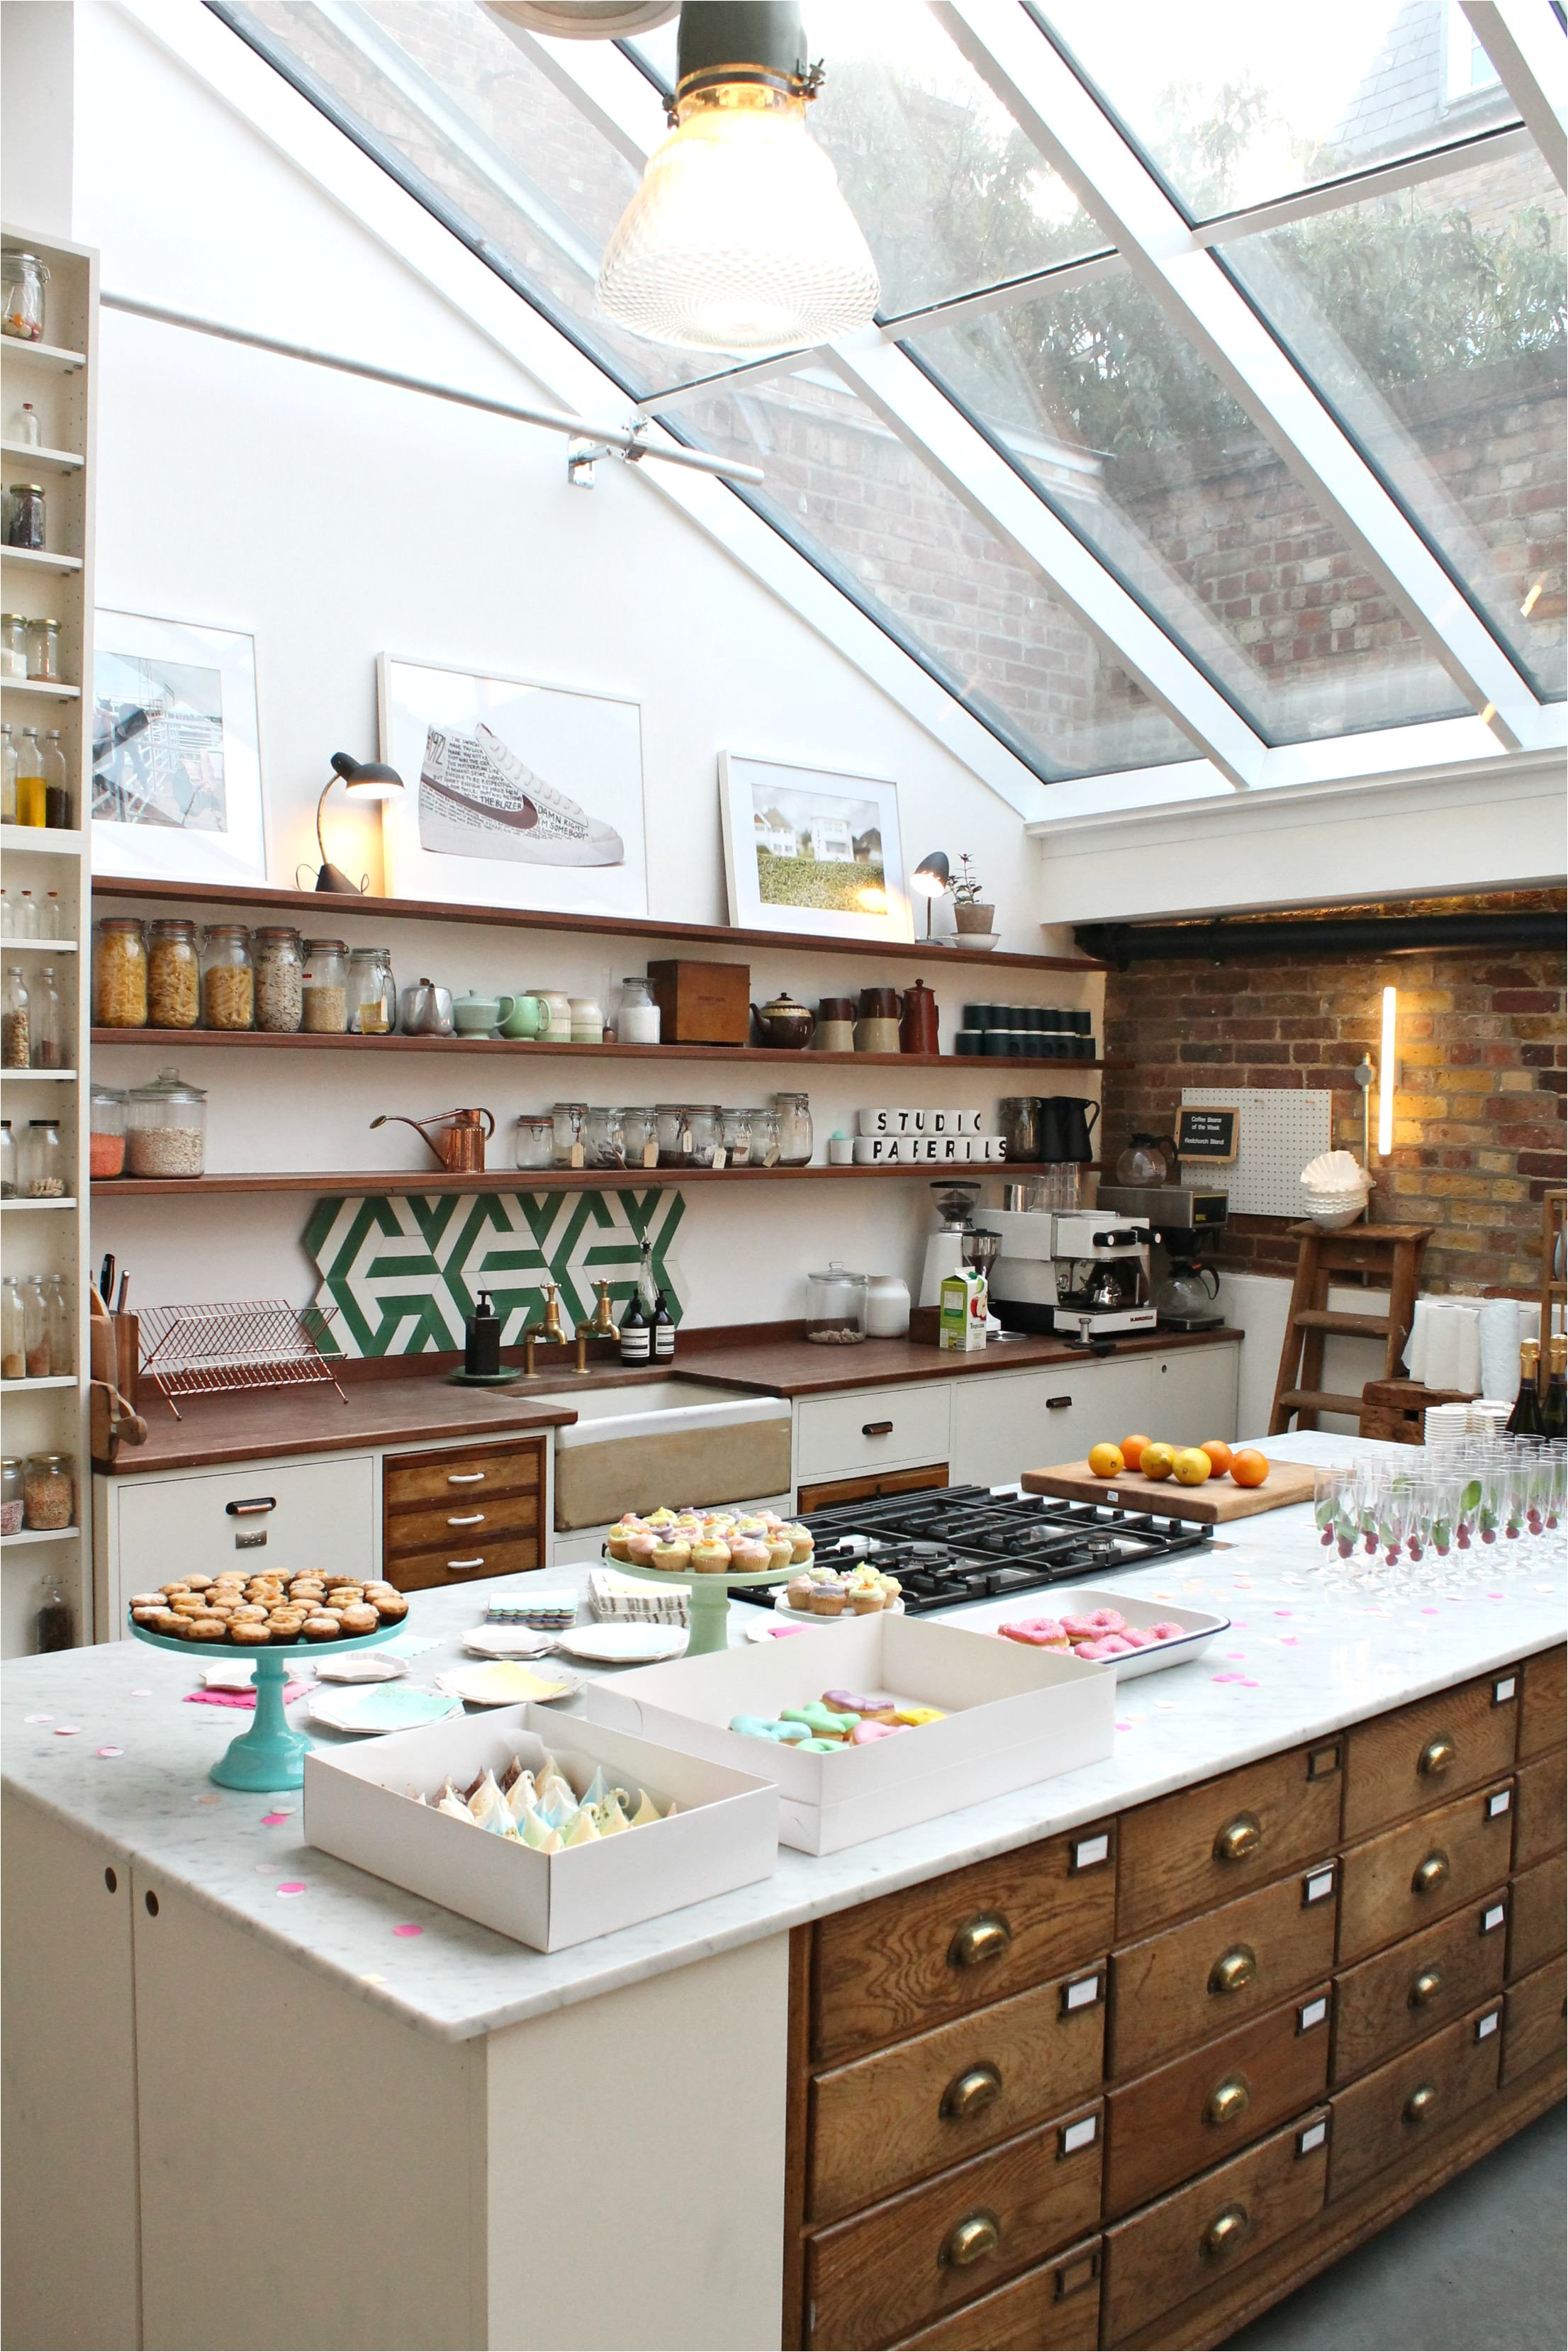 vintage style kitchen where jamie oliver cooks papermill studios